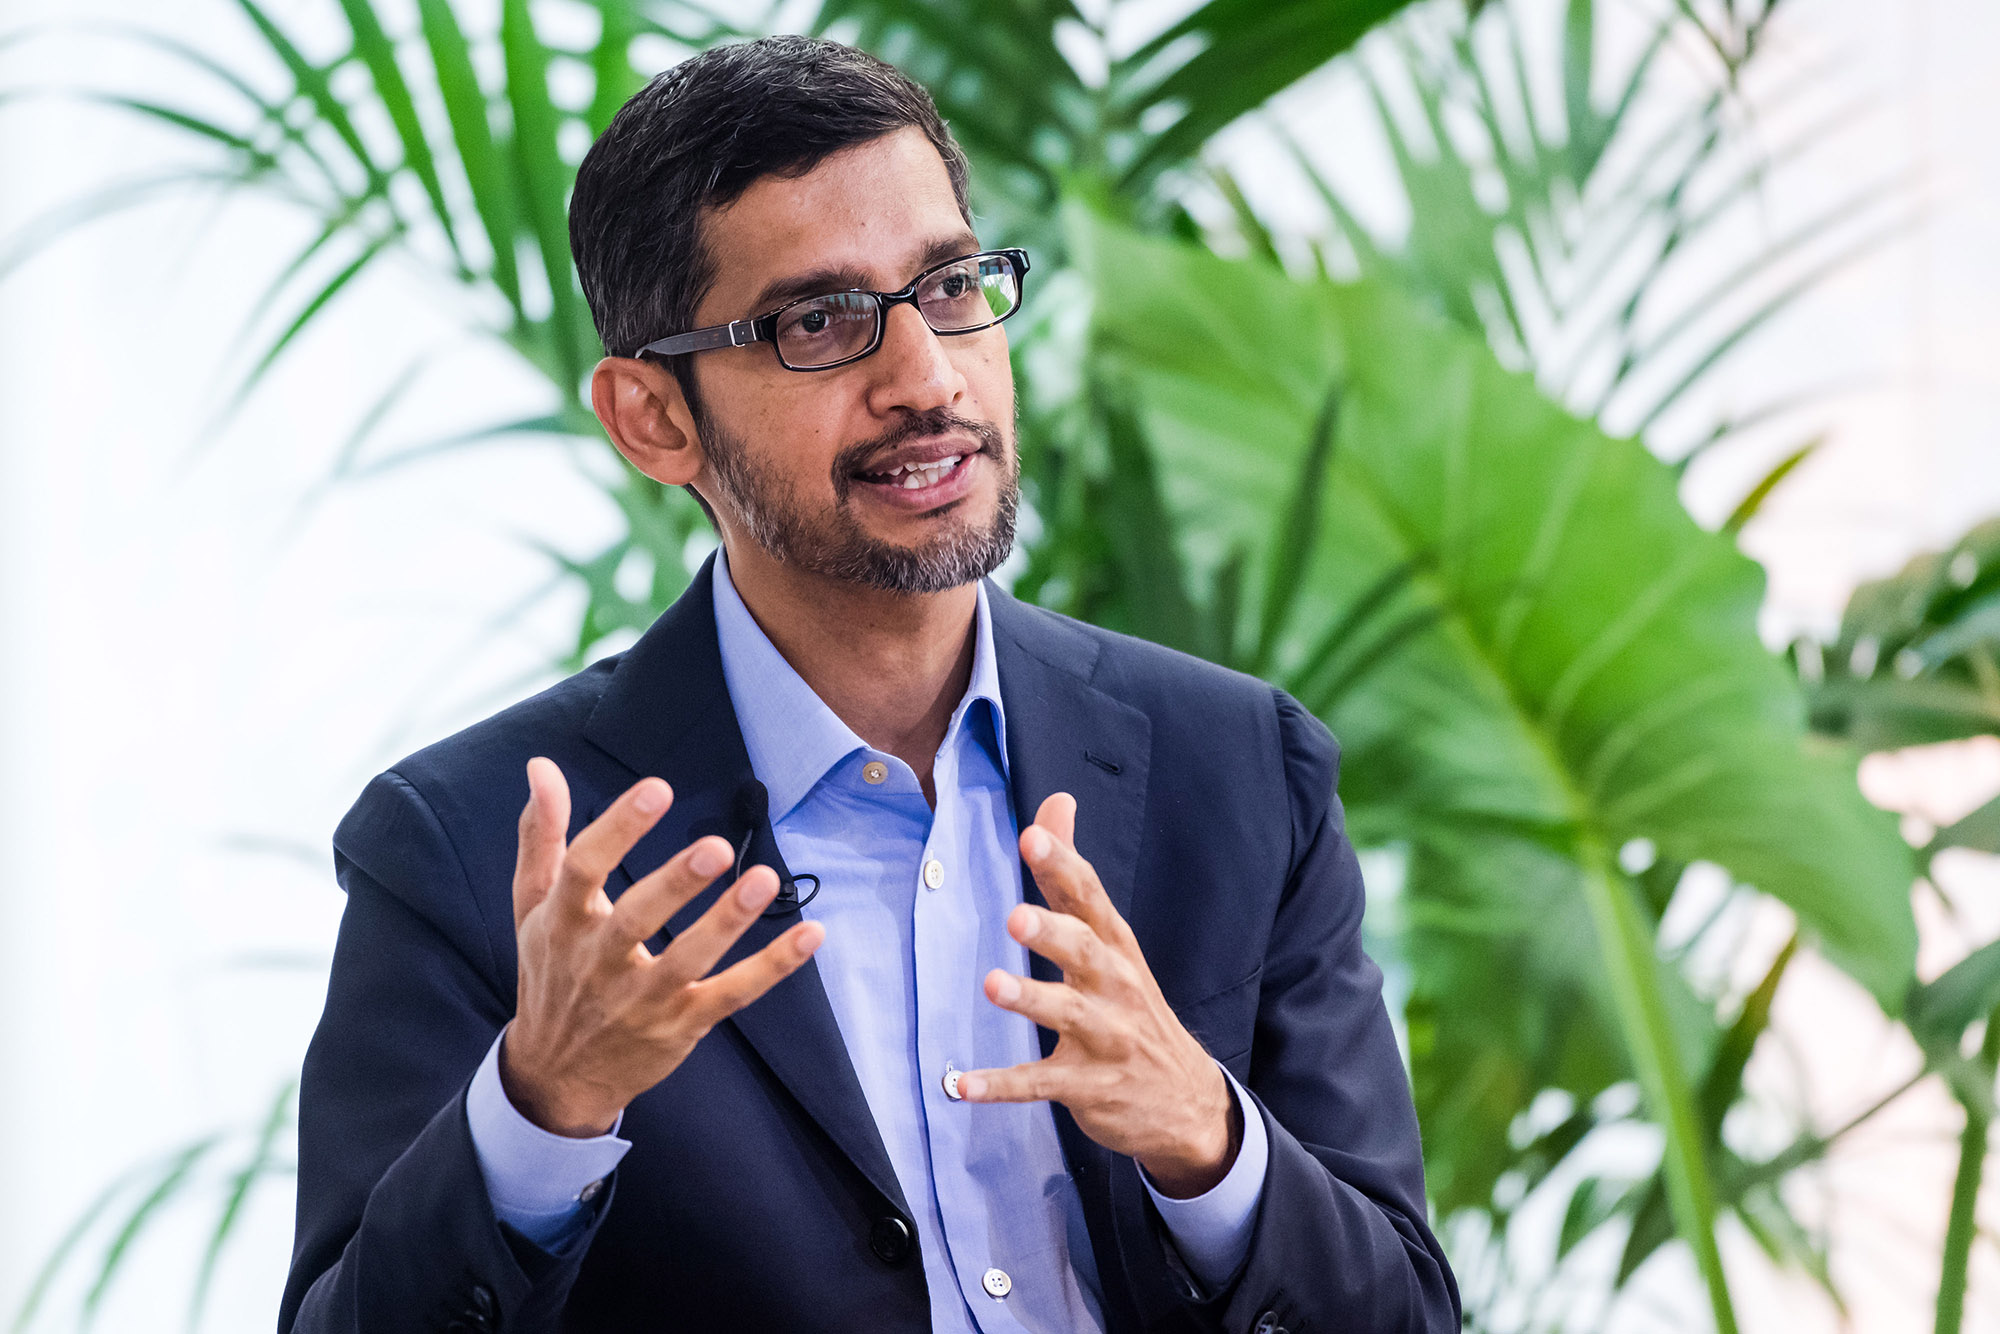 Google CEO to meet with Black college leaders following racism allegations